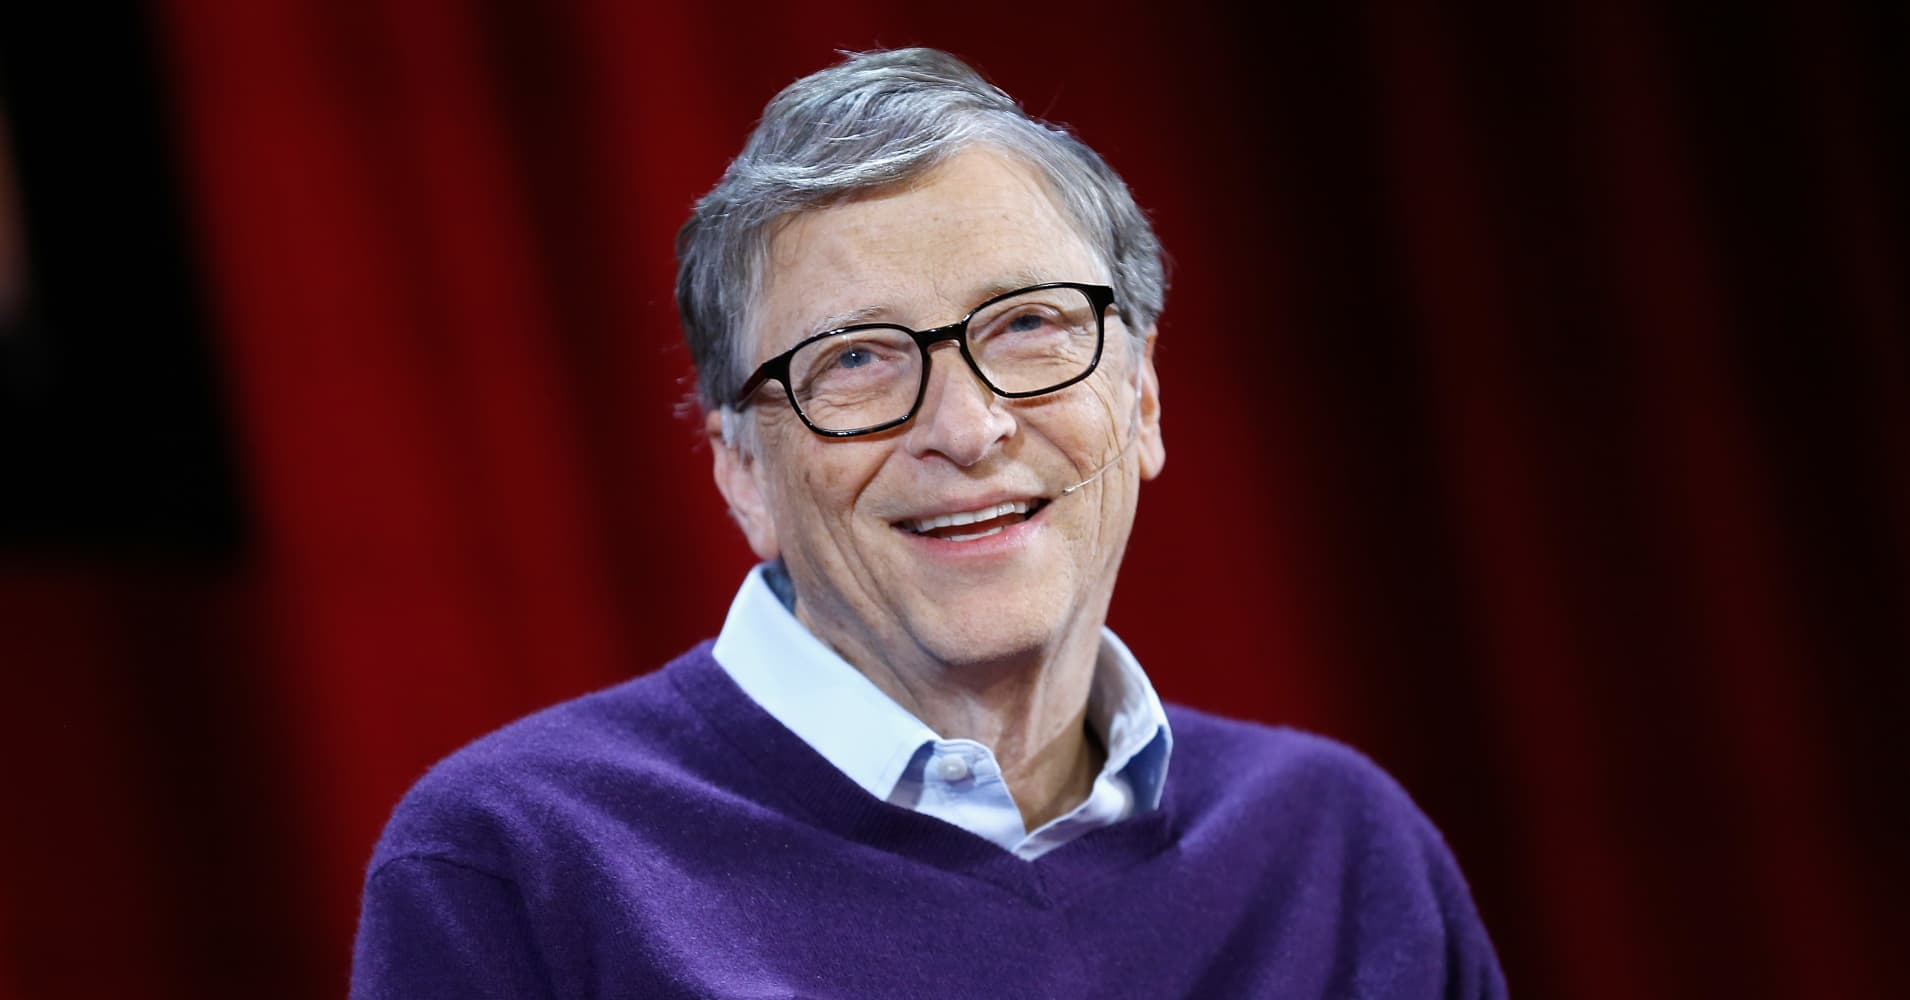 Gates, Bezos and other investors are pouring billions into clean tech